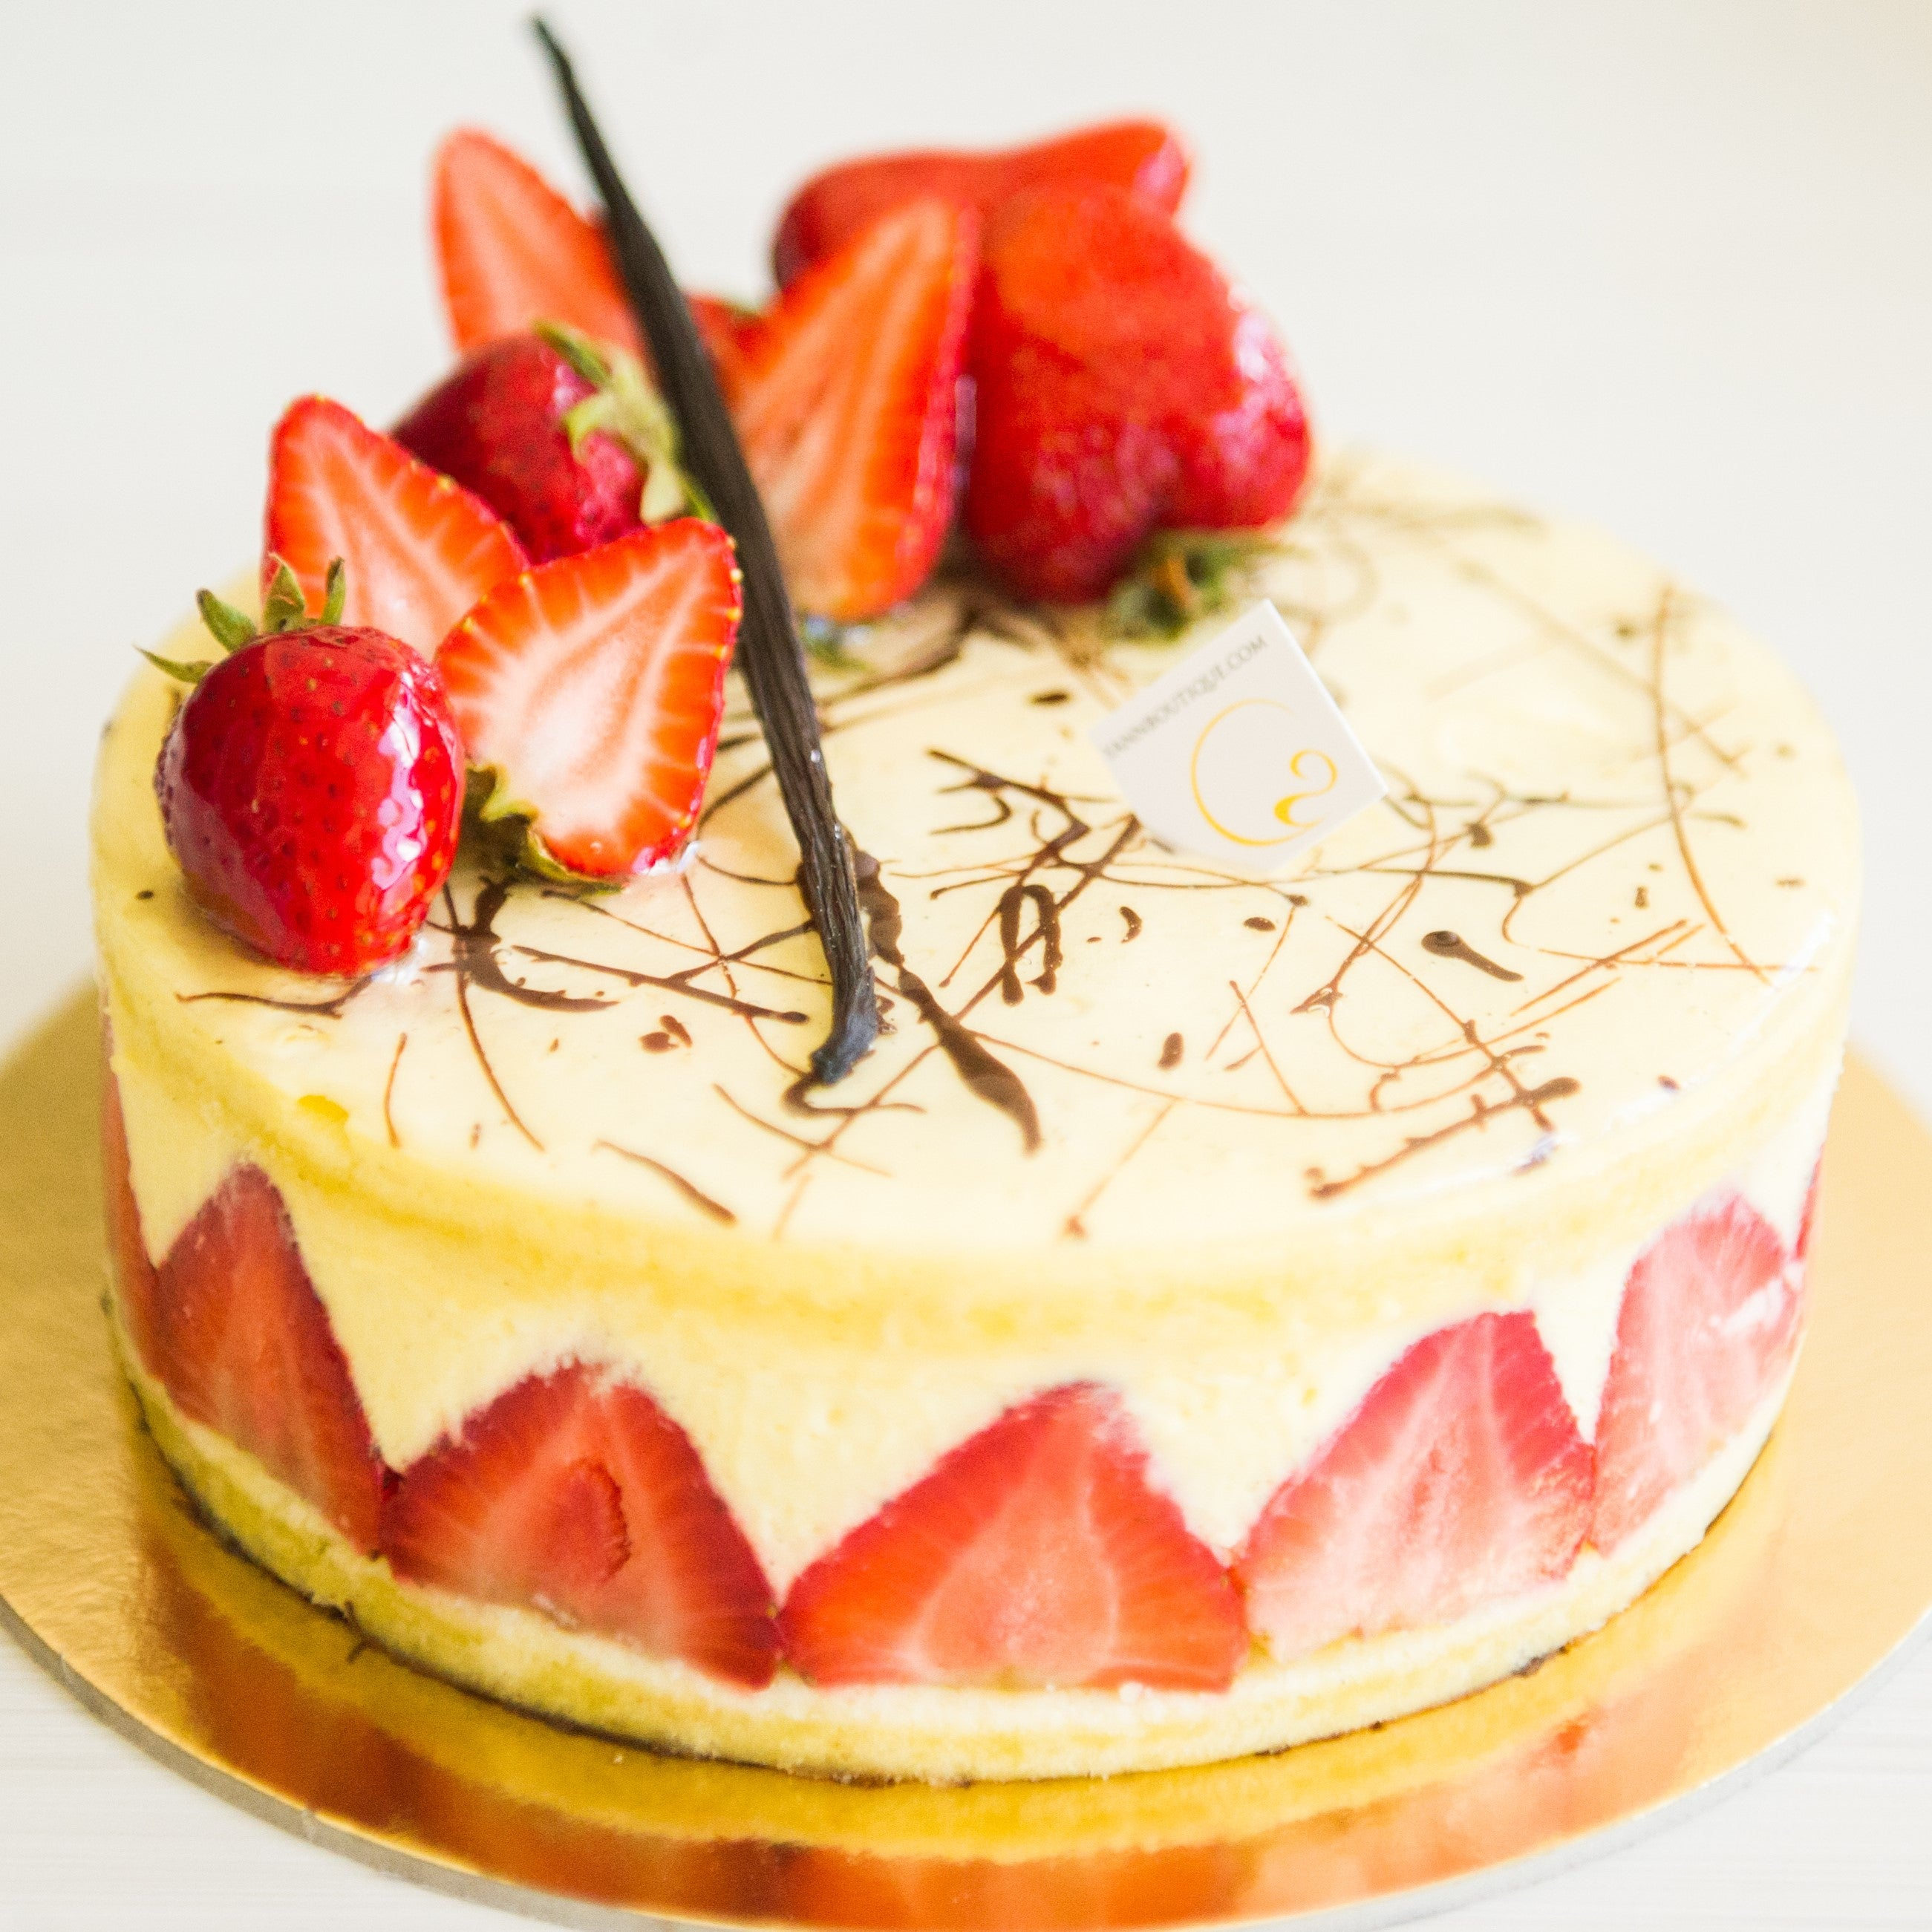 Fraisier cake the best of strawberries and vanilla, best choice of Calgary!